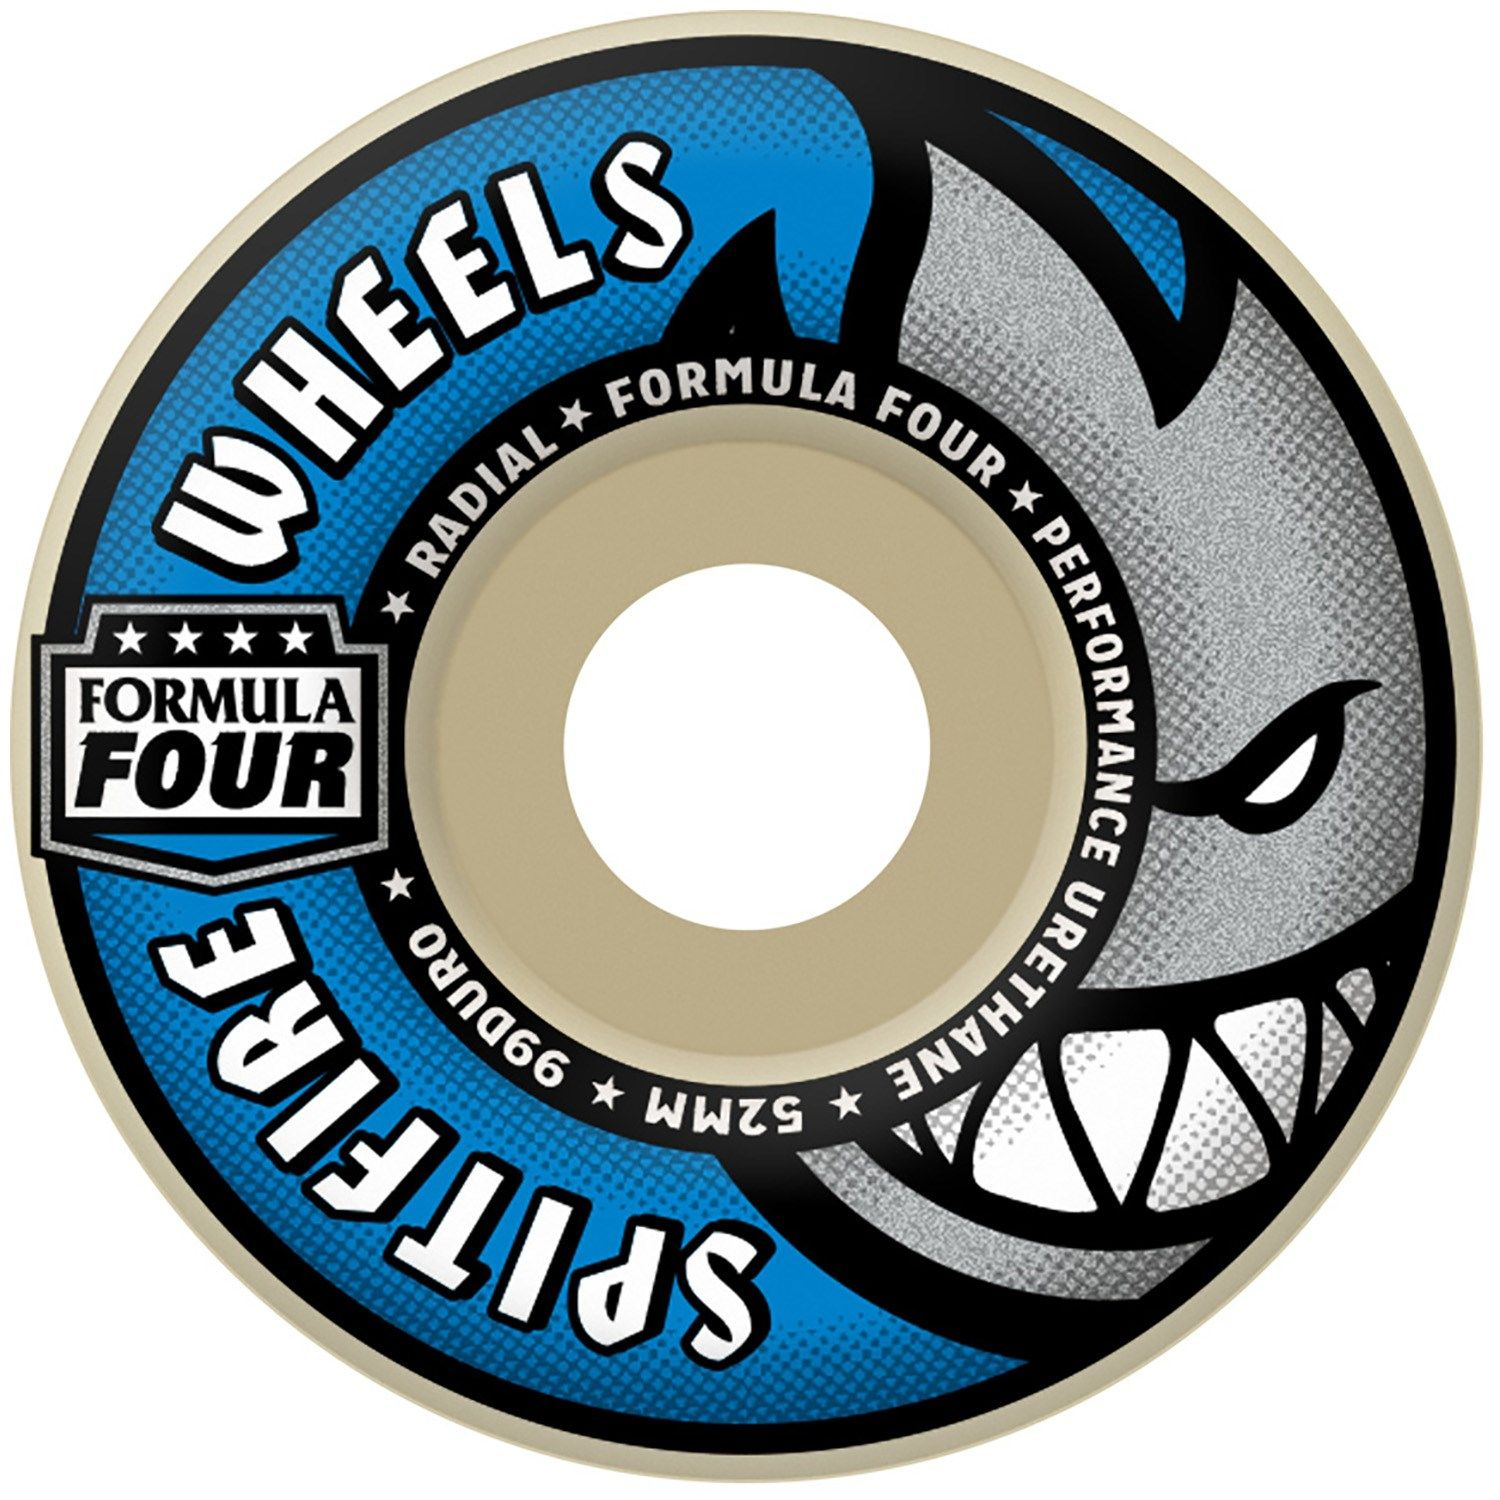 evo.com | Spitfire Skateboard Wheels > The Spitfire Formula Four 99D Radial Skateboard Wheels roll fast and take abuse. Designed with a round edge for control and a responsive slide. Radial Shape Round edges, slim to medium riding surface offers a quick, responsive , round edge shape. Formula Four Urethane Formula Four urethane is unlike any other. Both in the streets and under high-speed stress tests in Spitfire's lab, Formula Four wheels retained more material, coned less and kept their origin